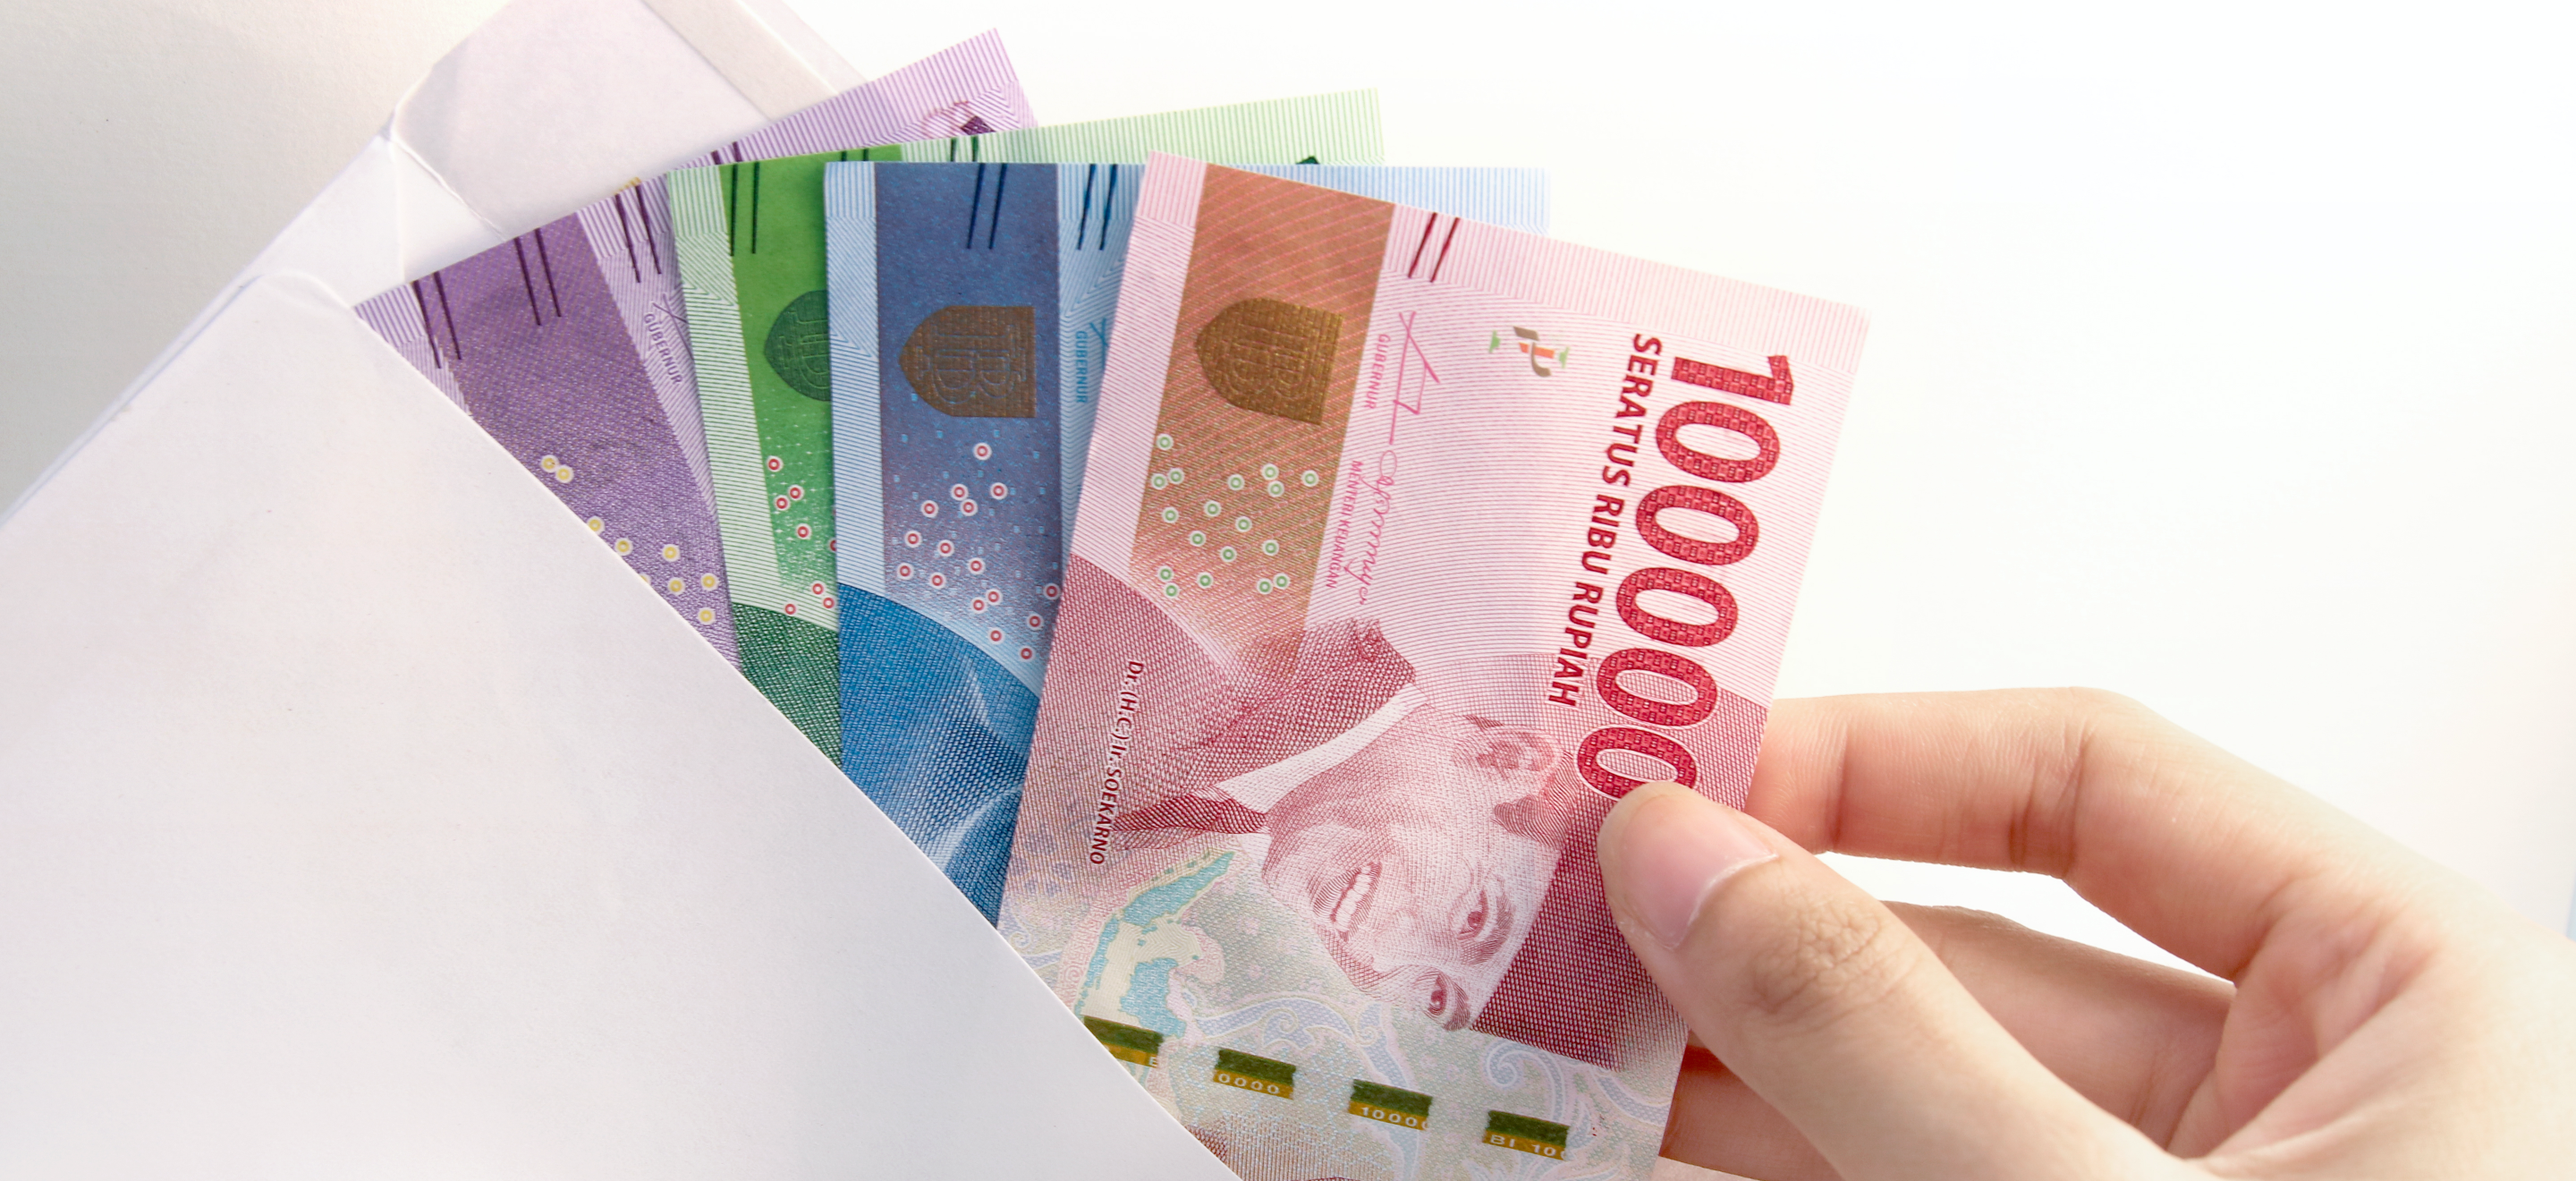 Indonesian fintechs plug payday gaps, help workers stay away from loan sharks